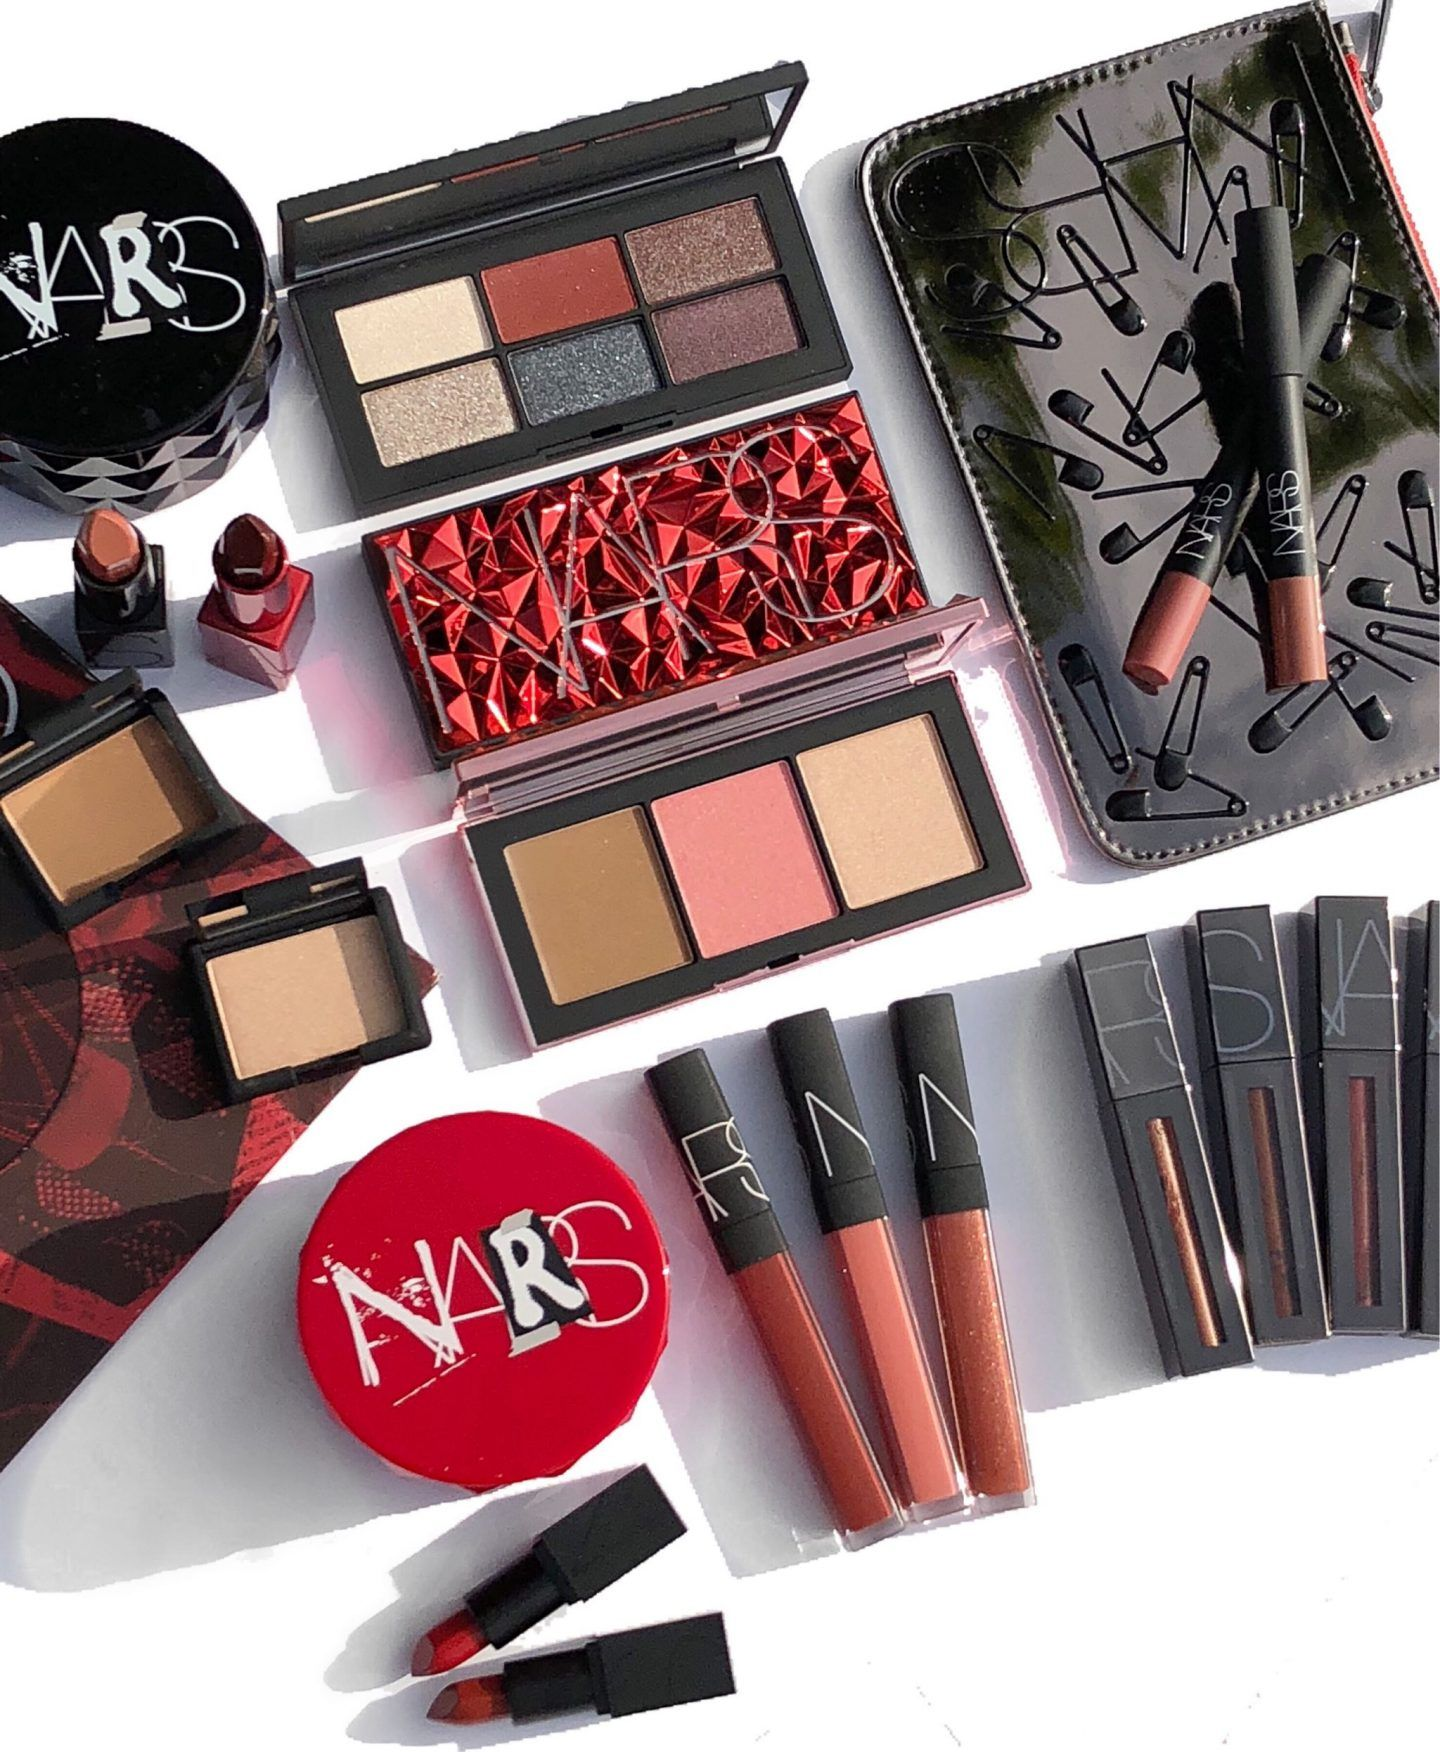 Holiday nars makeup collection recommendations to wear in summer in 2019